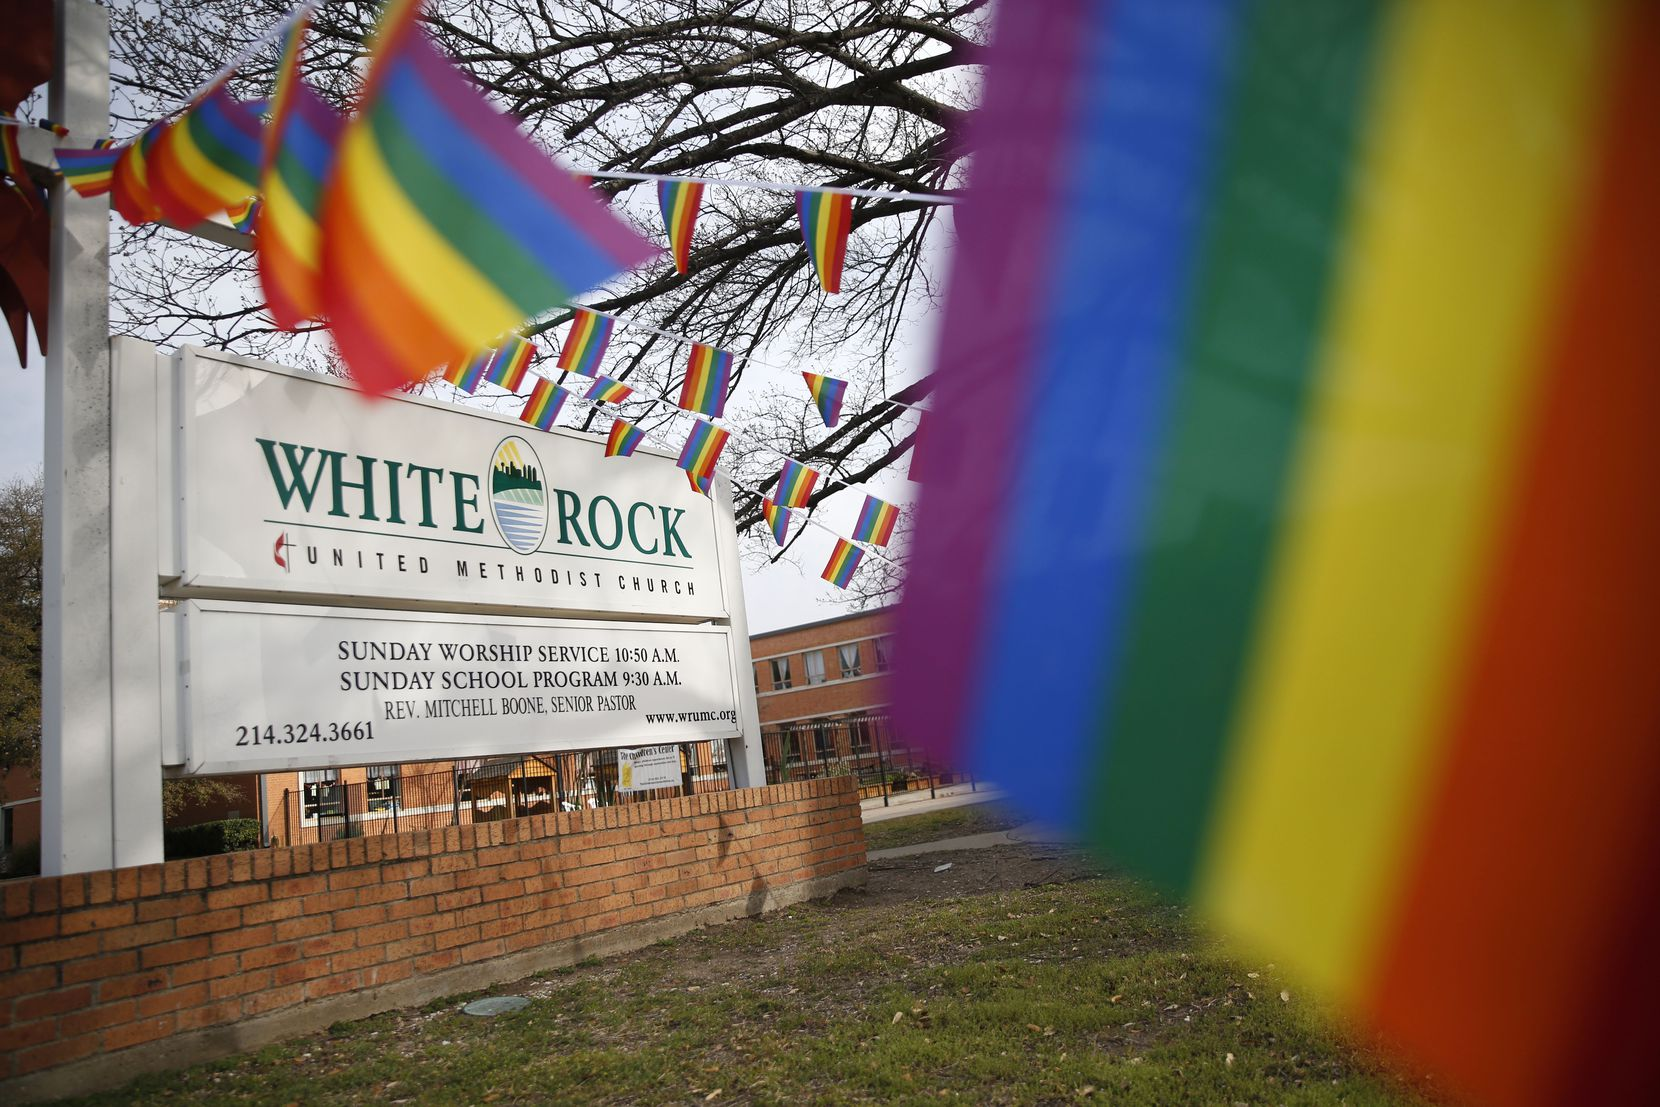 White Rock United Methodist Church in Dallas is revising its wedding policy to make it more inclusive in the aftermath of the anti-LGBTQ vote.